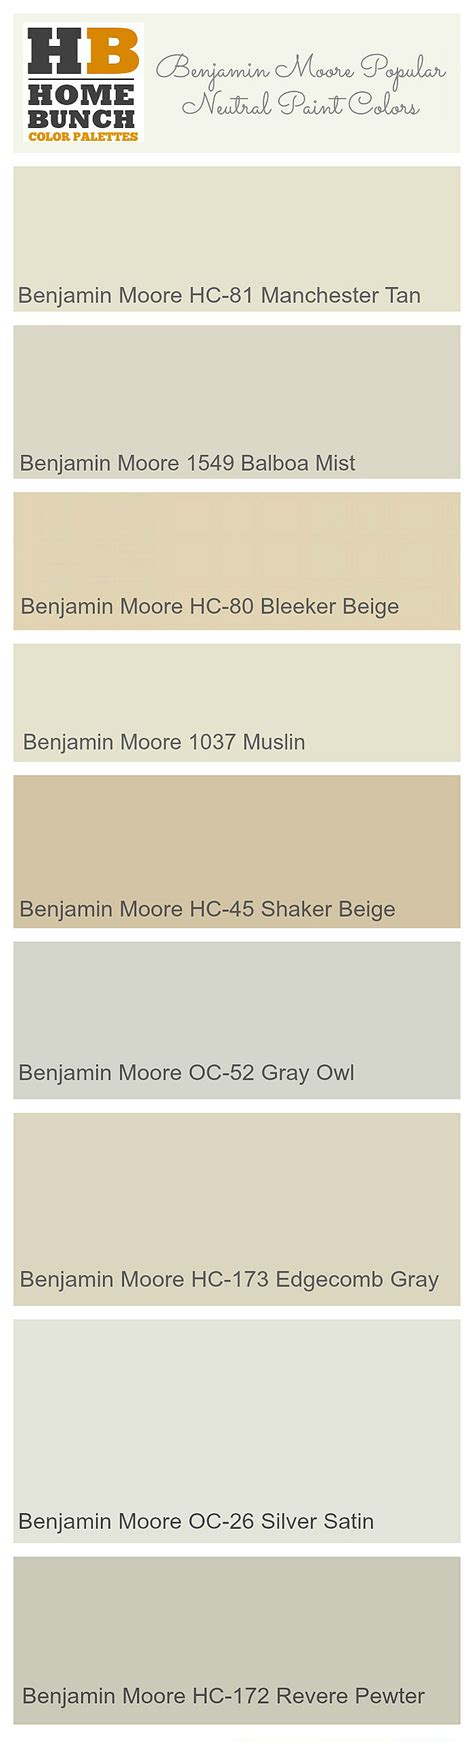 ben moore colors bleecker beige pinterest crafts